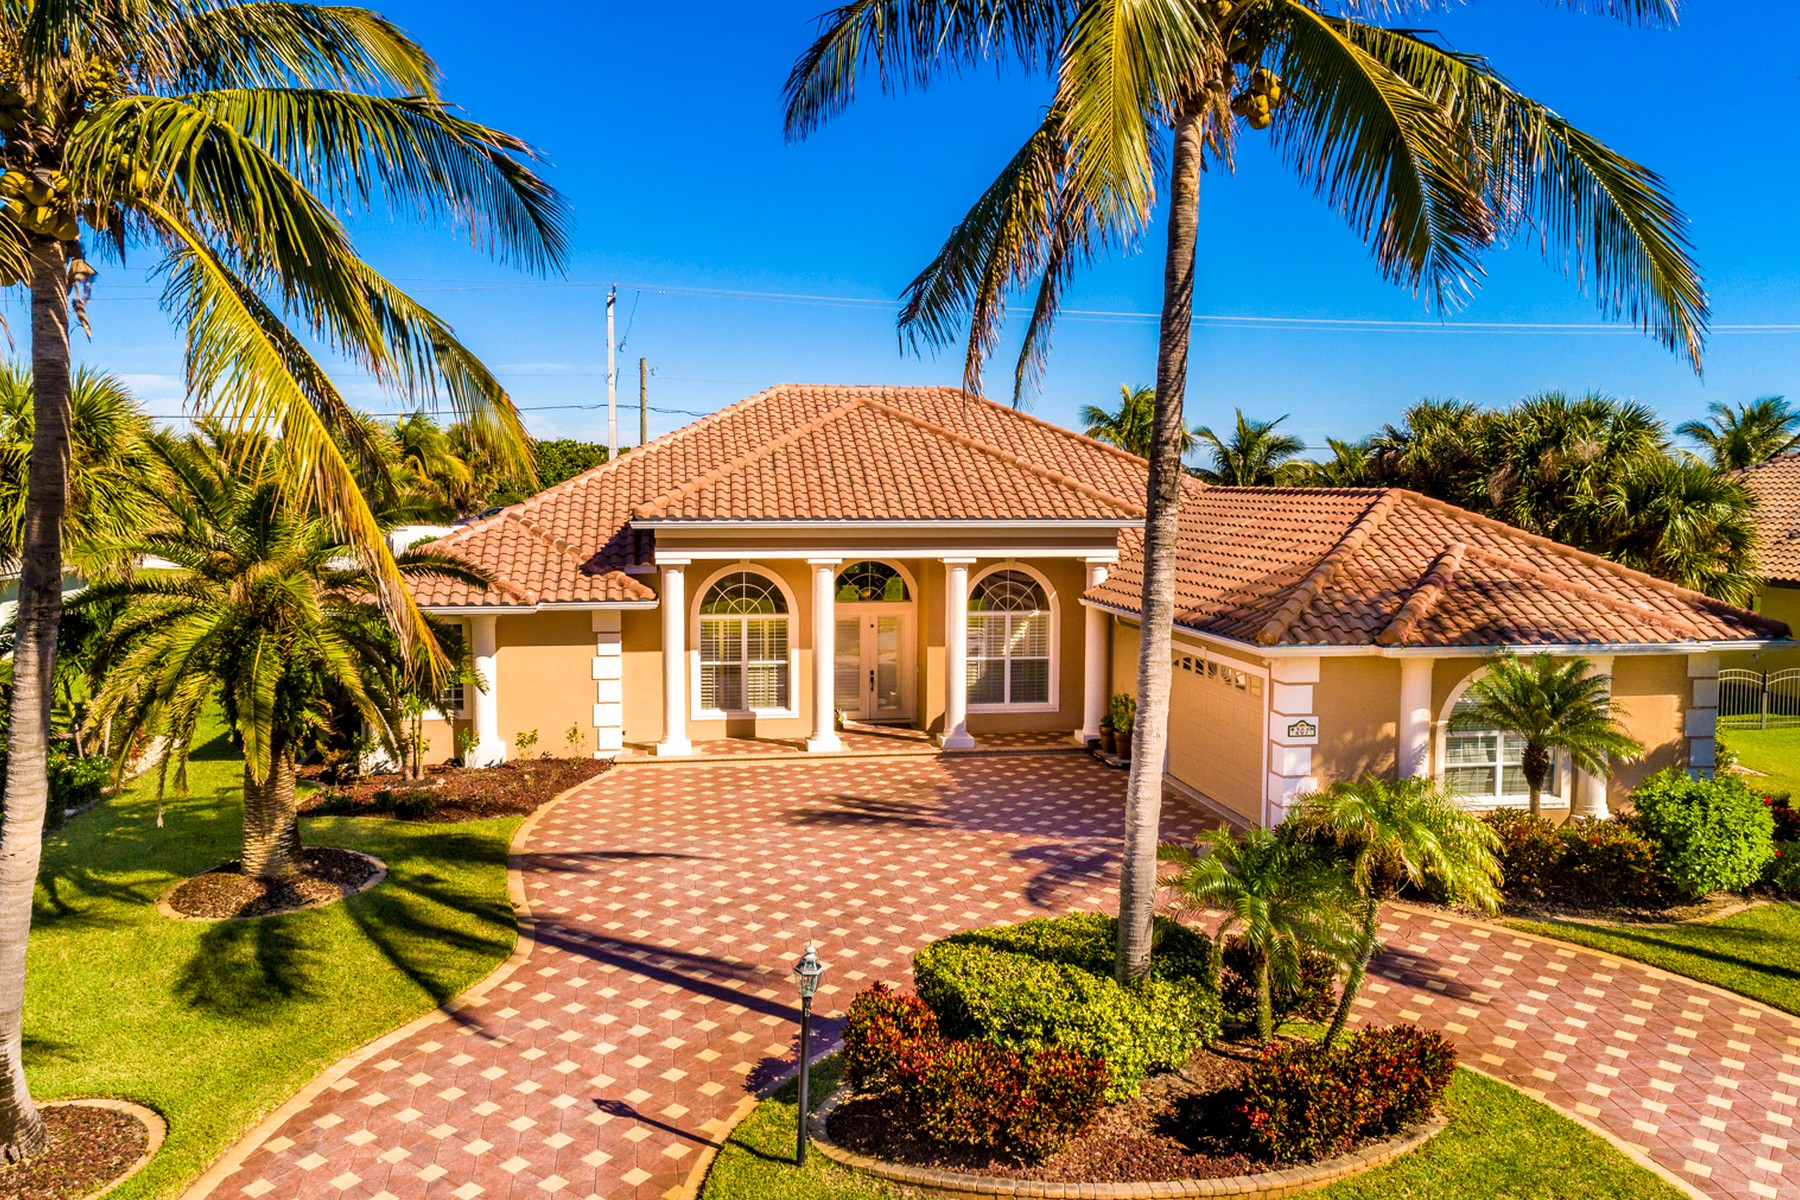 Single Family Homes for Sale at Spacious Home in Prestigious Ocean to River Community 207 Loggerhead Drive Melbourne Beach, Florida 32951 United States